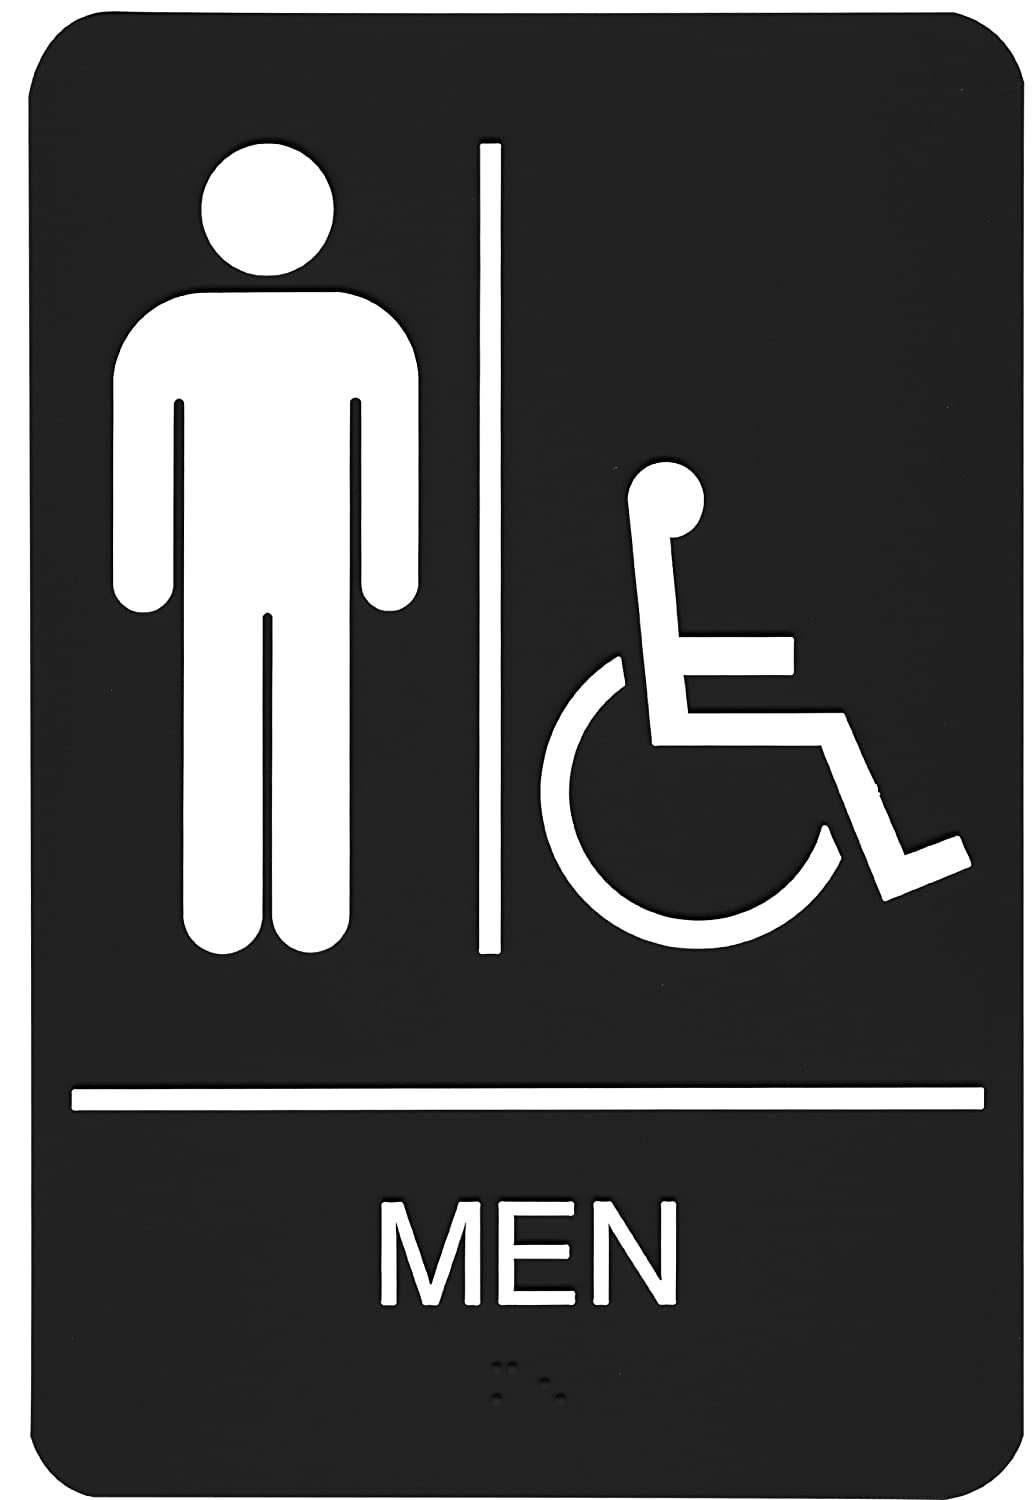 alien toilet aeproduct funny getsubject female door decal diy item bathroom new sign sticker